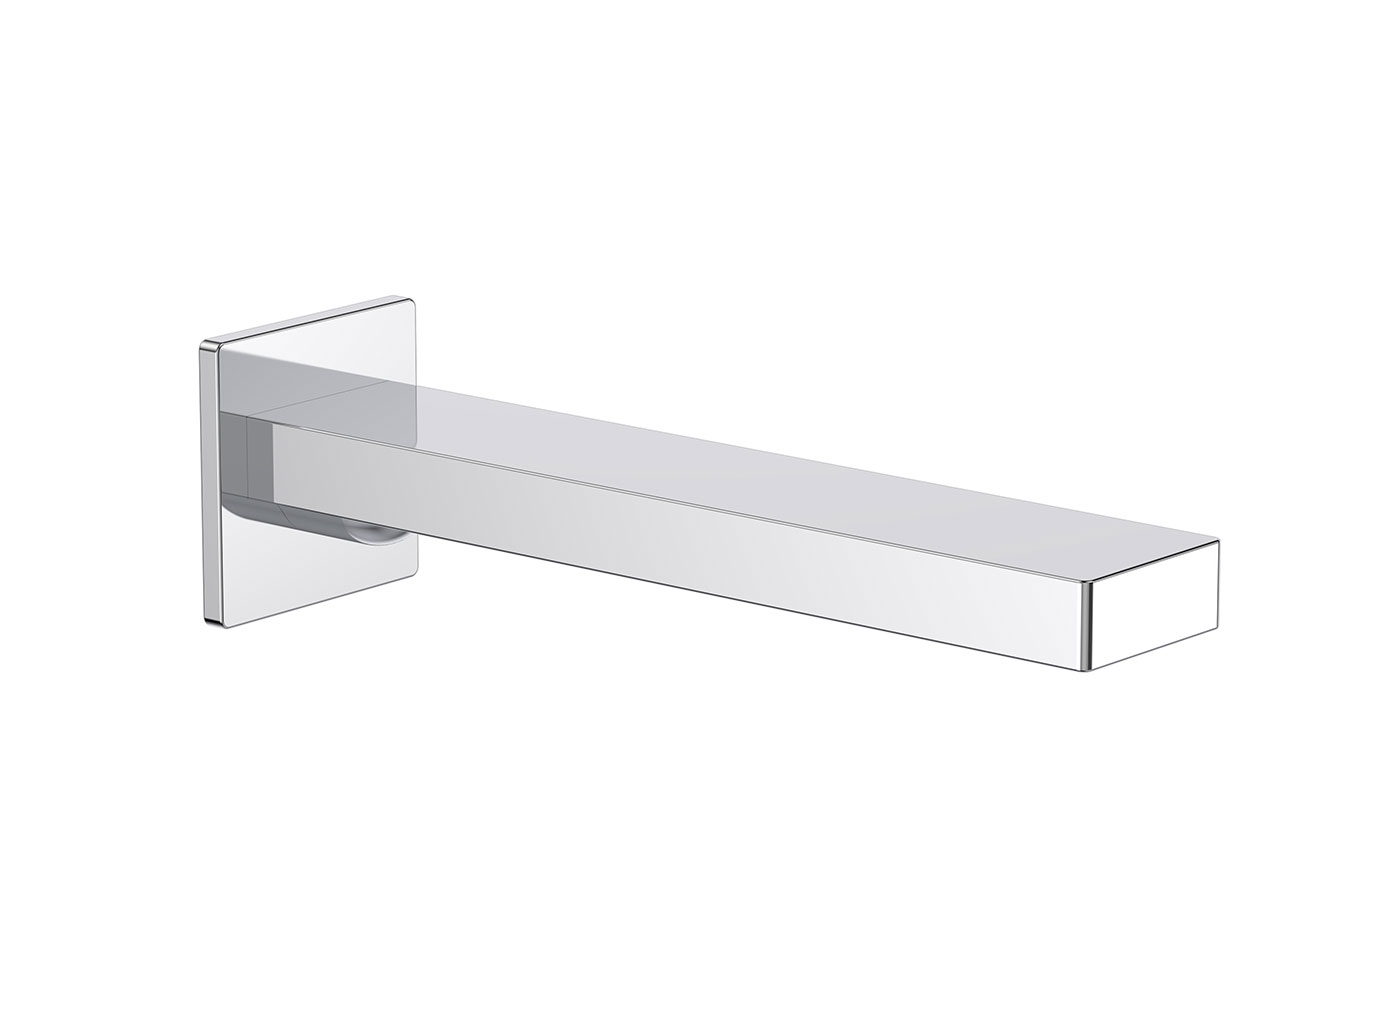 Keep it simple with Clark's Round Square basin/bath outlet.